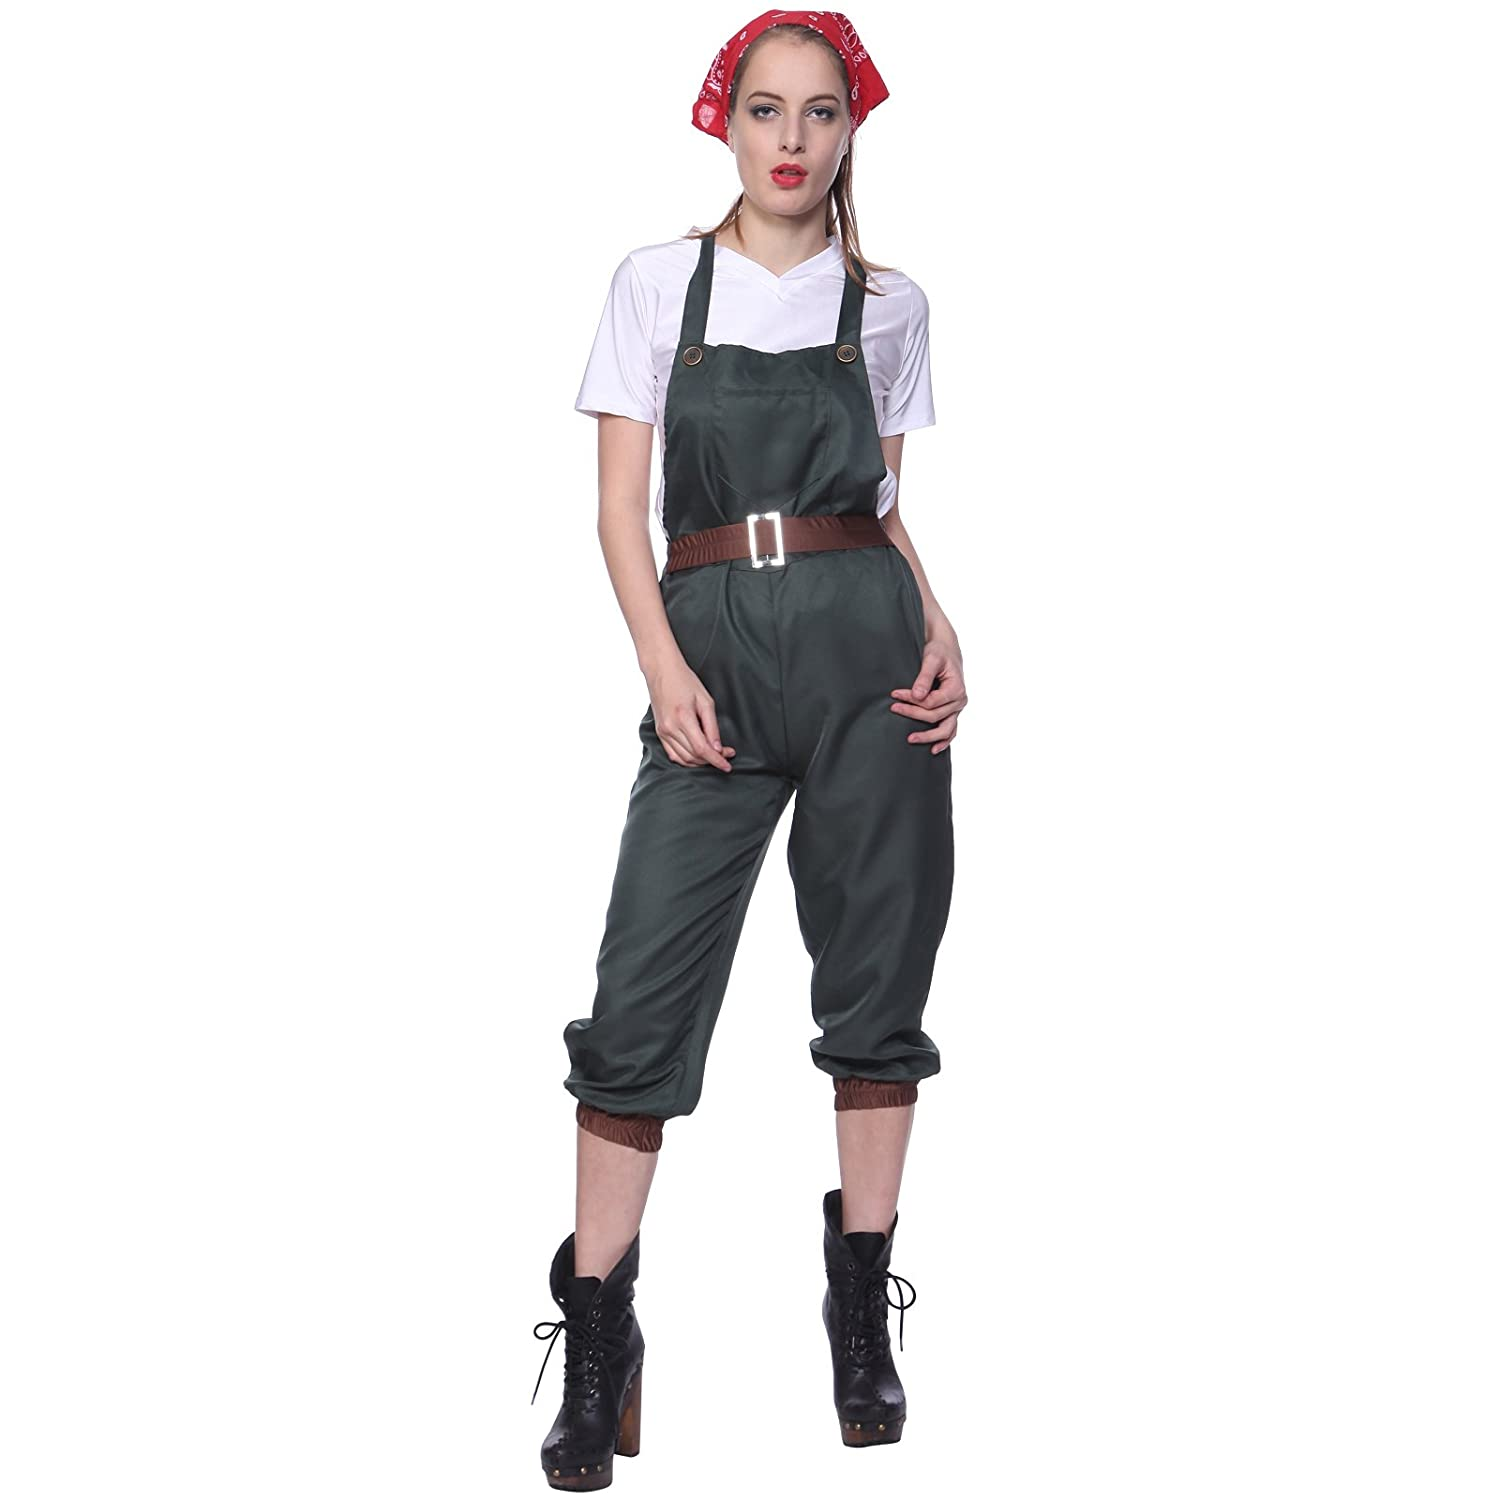 Rosie the Riveter Costume & Outfit Ideas WW2 1940s Land Girl Costume World War 2 Wartime Uniform Fancy Dress $14.99 AT vintagedancer.com